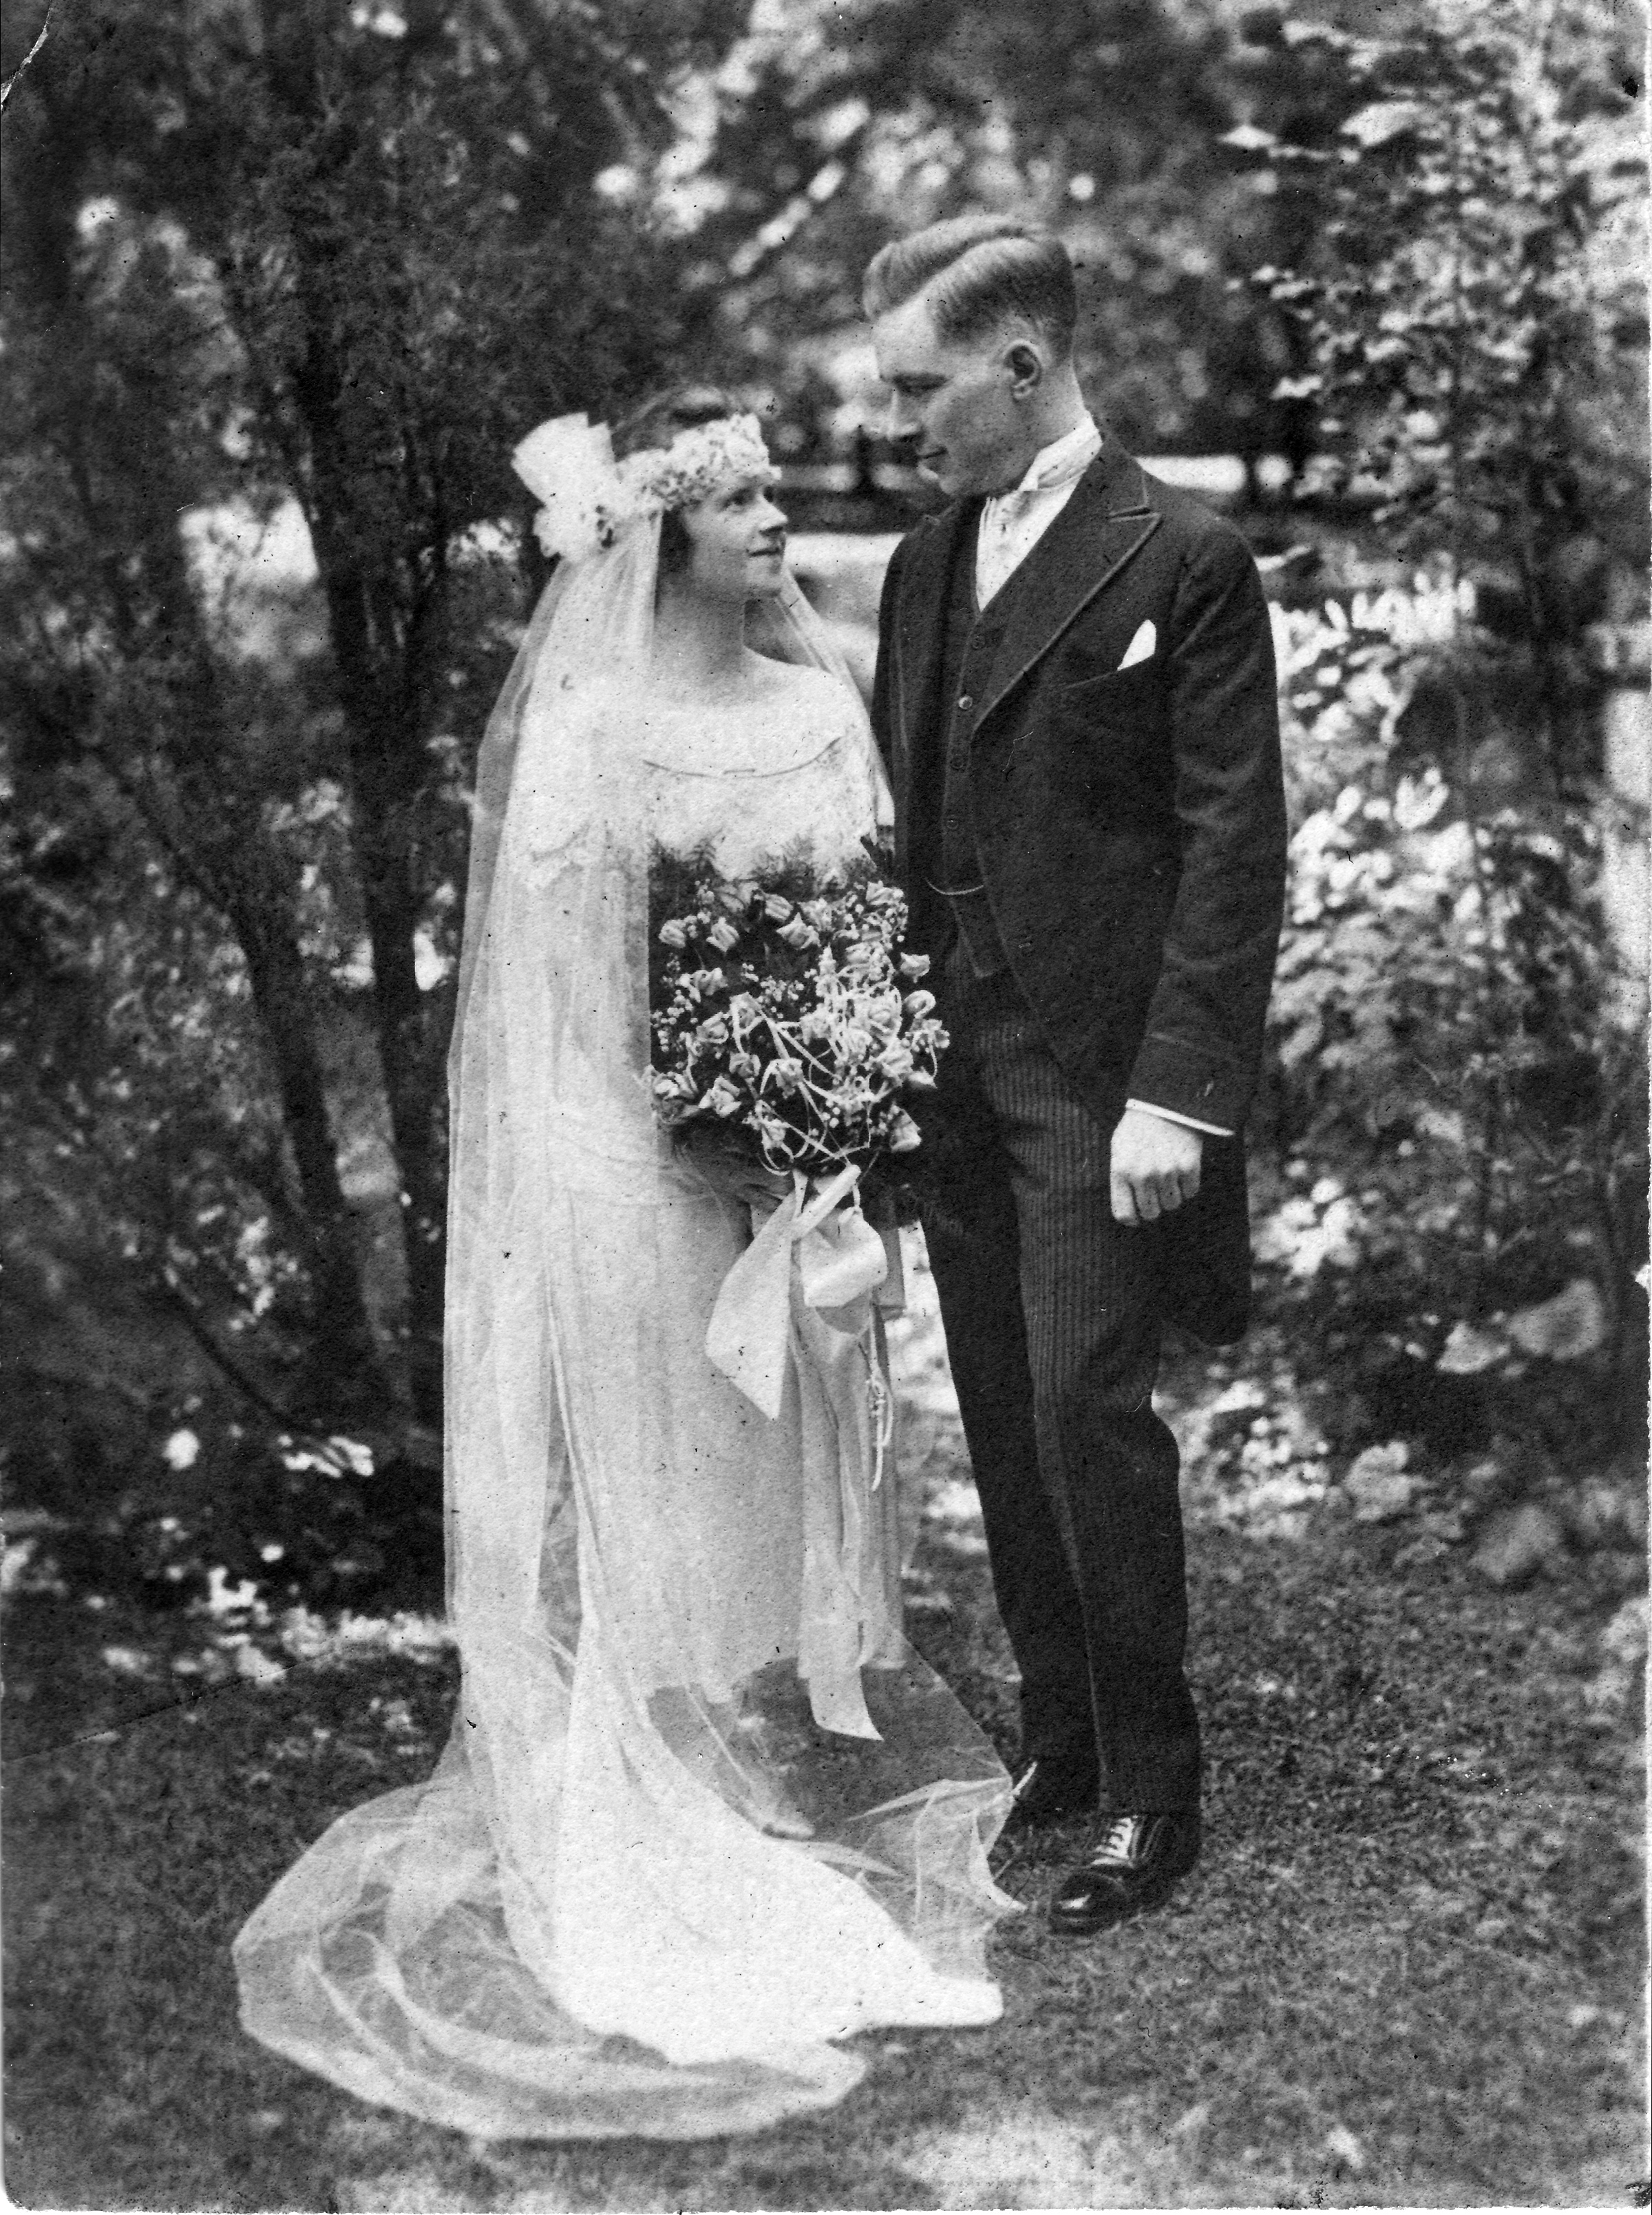 Betty & Paul's wedding portrait